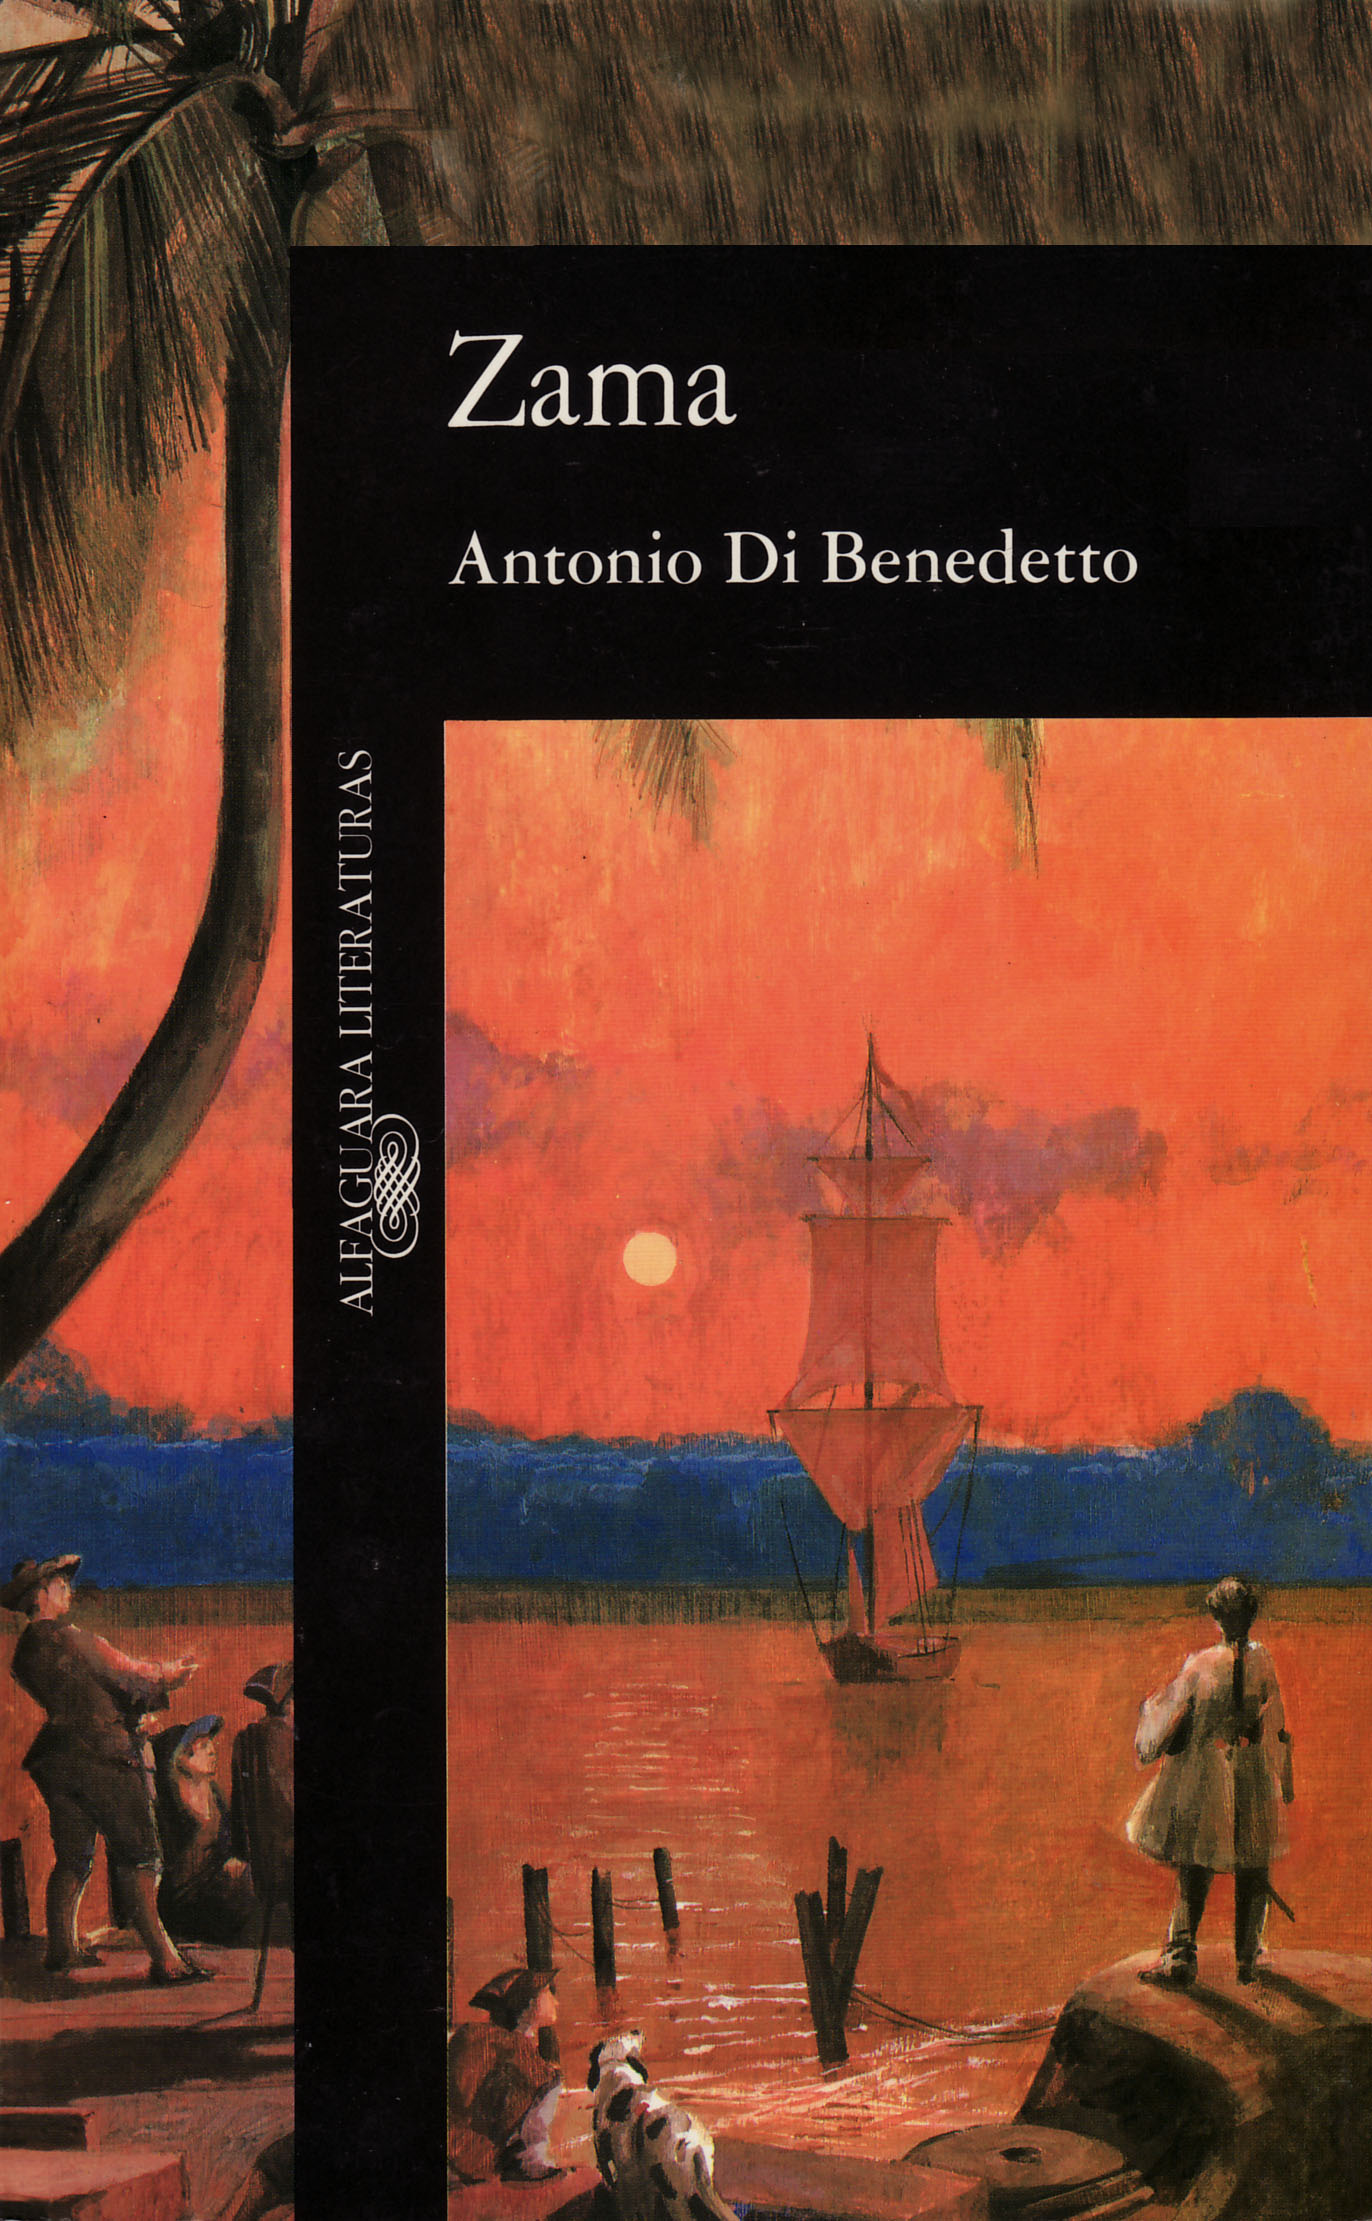 ANTONIO DI BENEDETTO ZAMA PDF DOWNLOAD